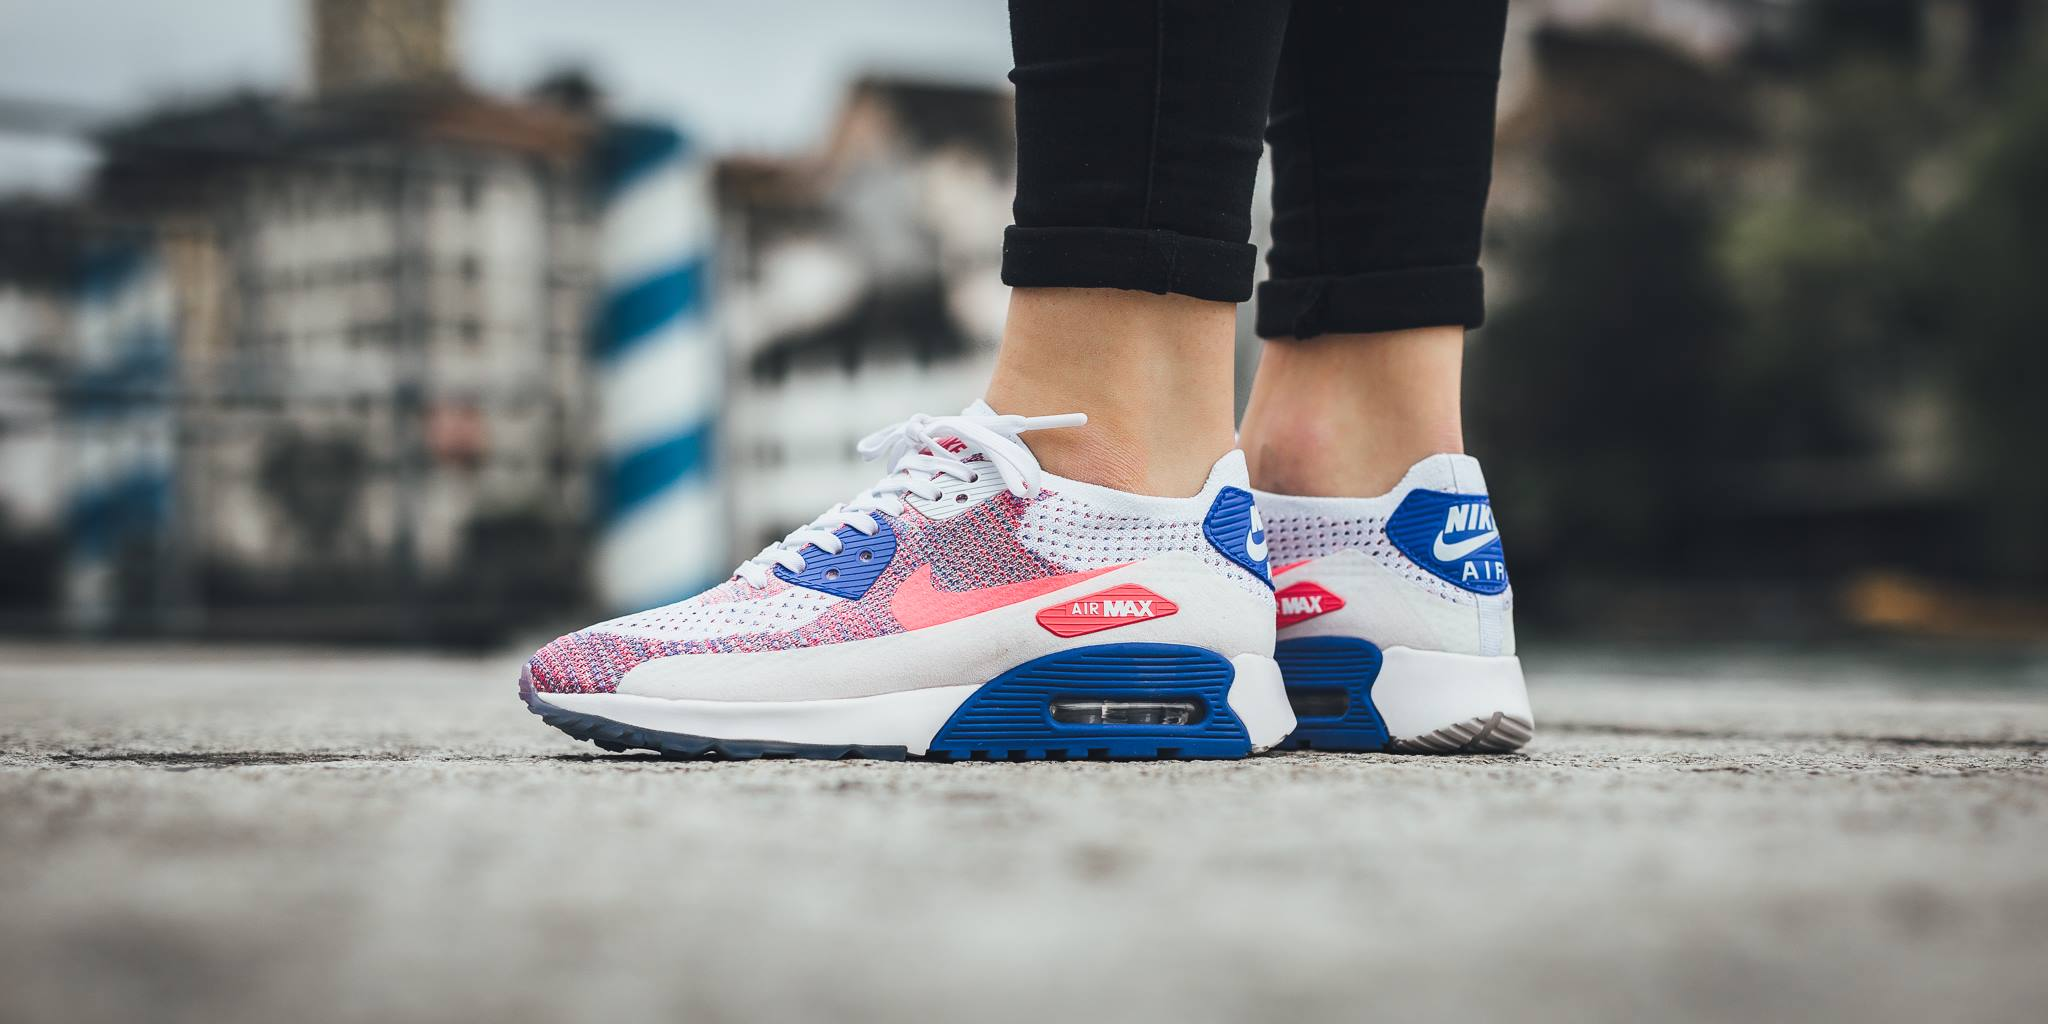 950434da844a7 A brand new women's colorway of the Nike Air Max 90 Ultra 2.0 Flyknit is  unveiled for spring, and it's covered in a mixture of white/racer pink and  medium ...